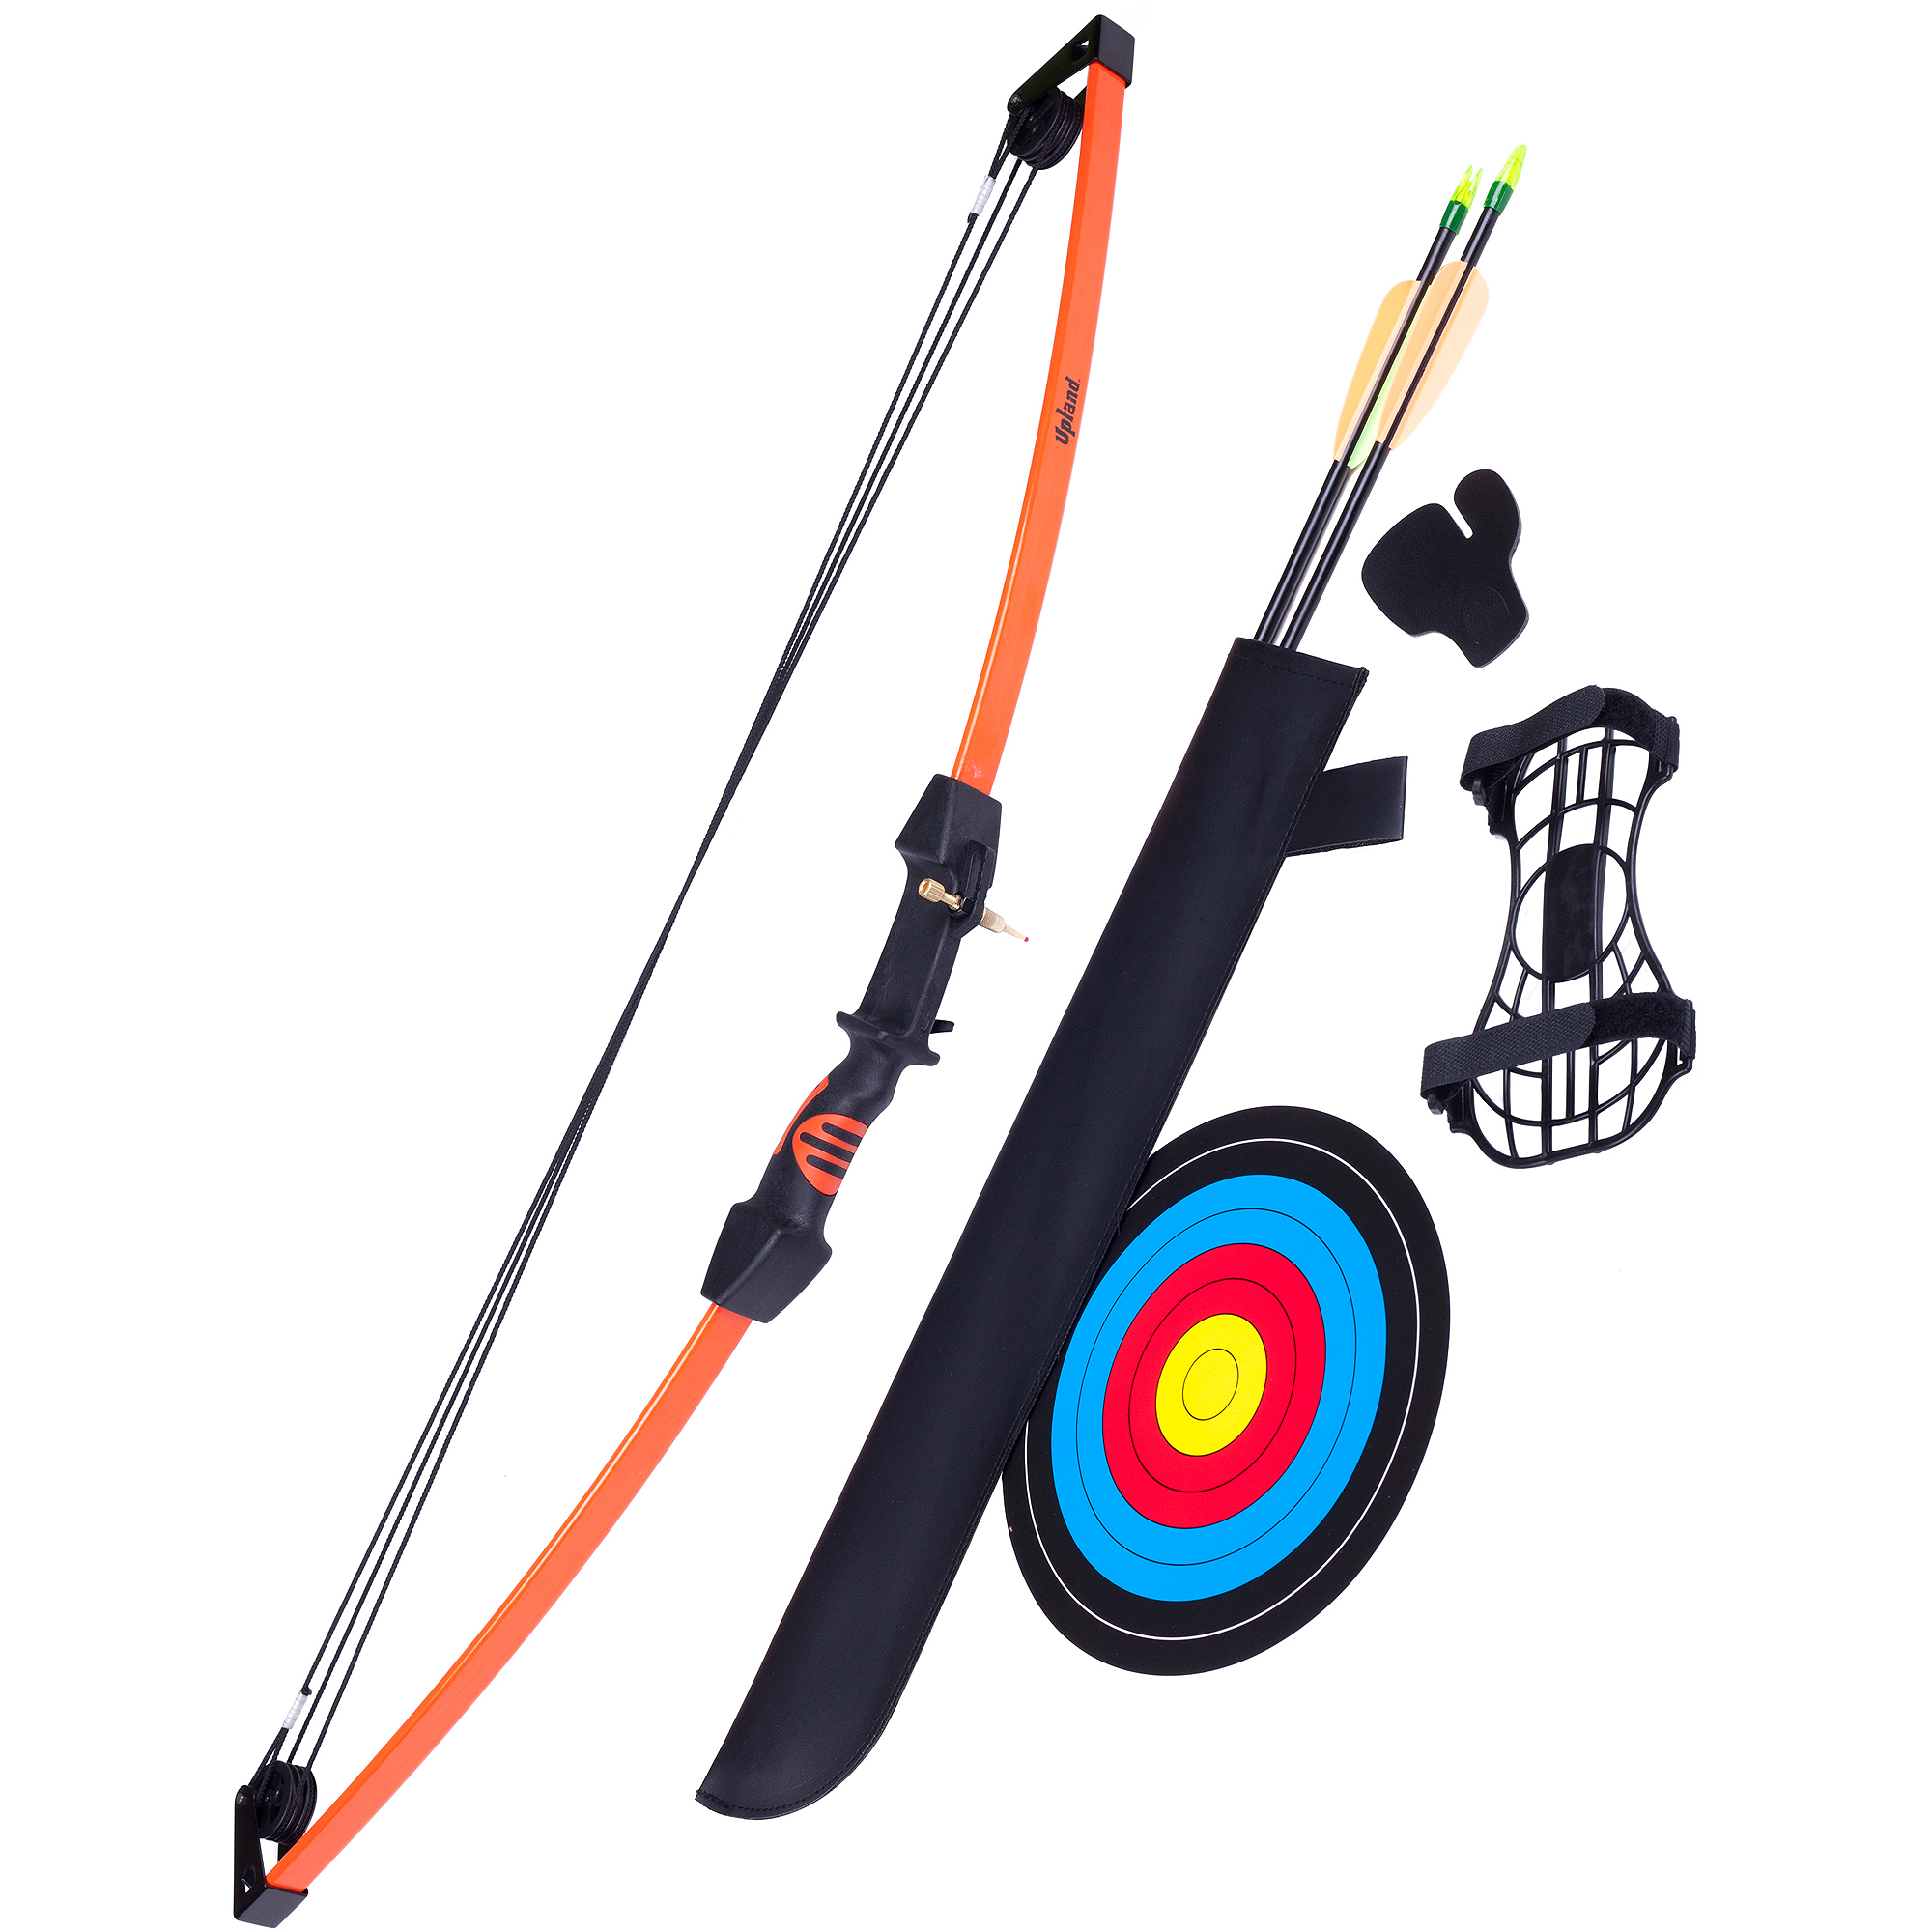 Crosman Archery Upland Compound Bow Package and Target